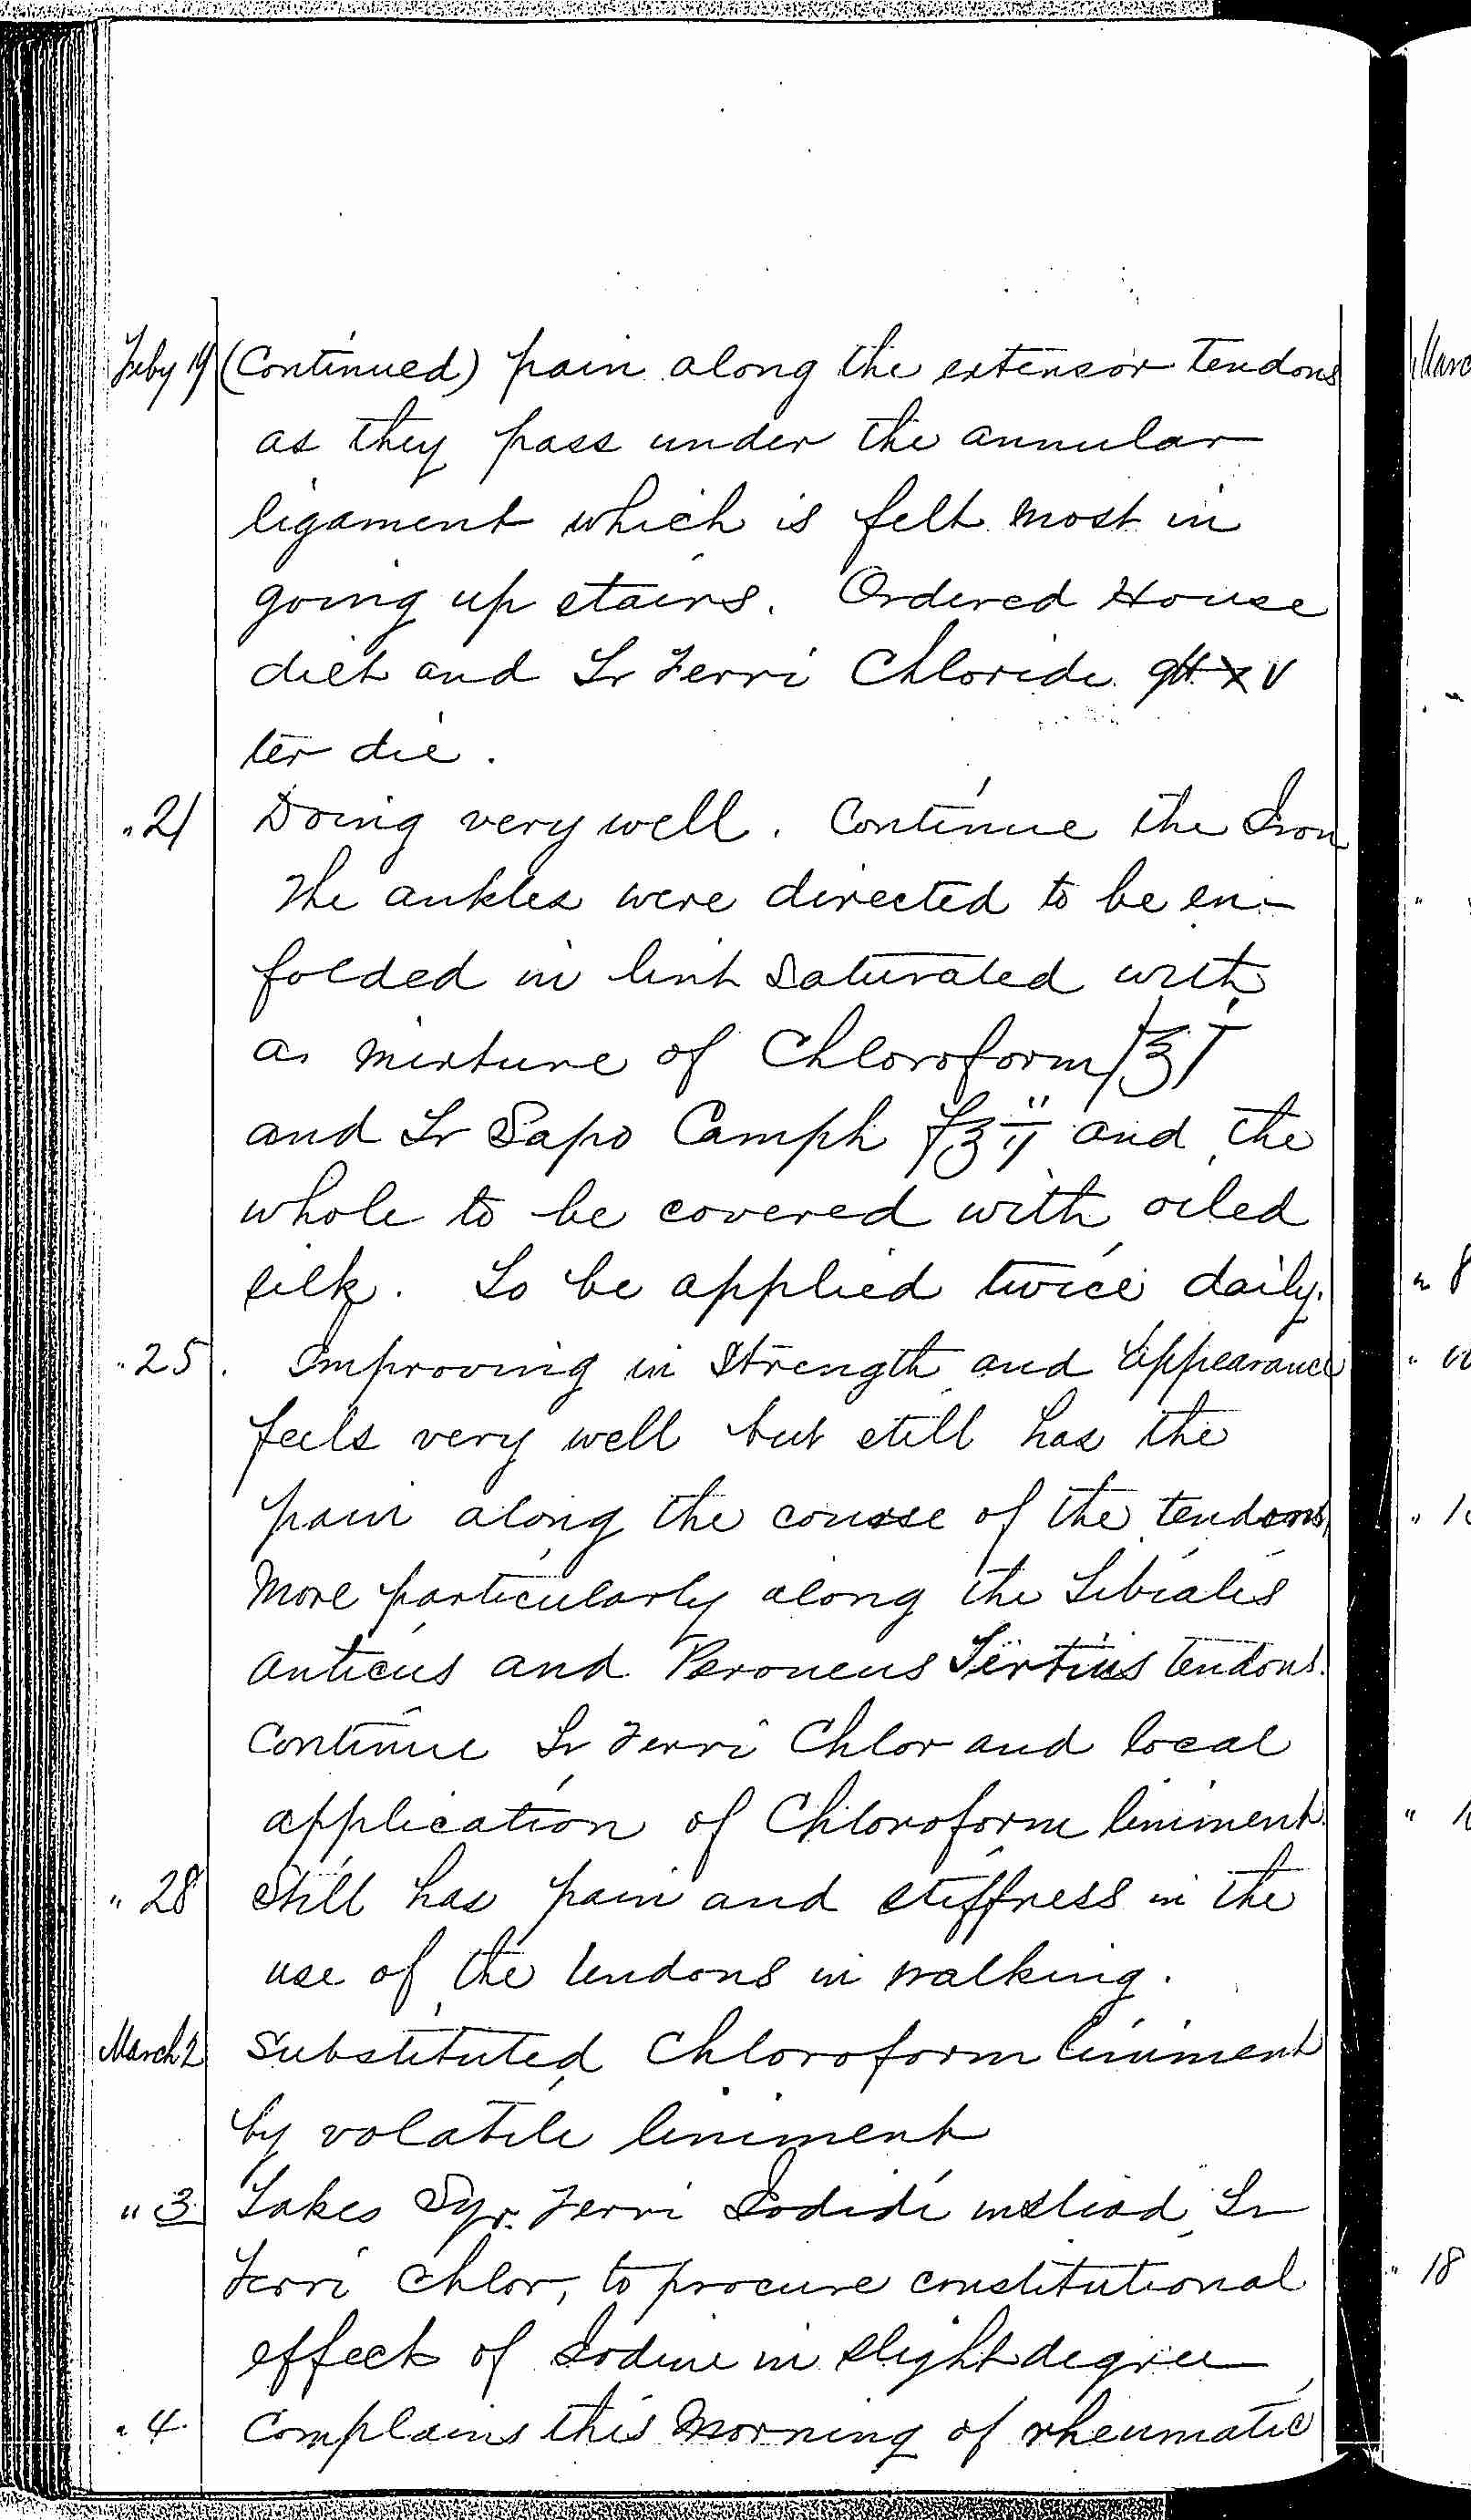 Entry for James McNalty (page 2 of 3) in the log Hospital Tickets and Case Papers - Naval Hospital - Washington, D.C. - 1868-69